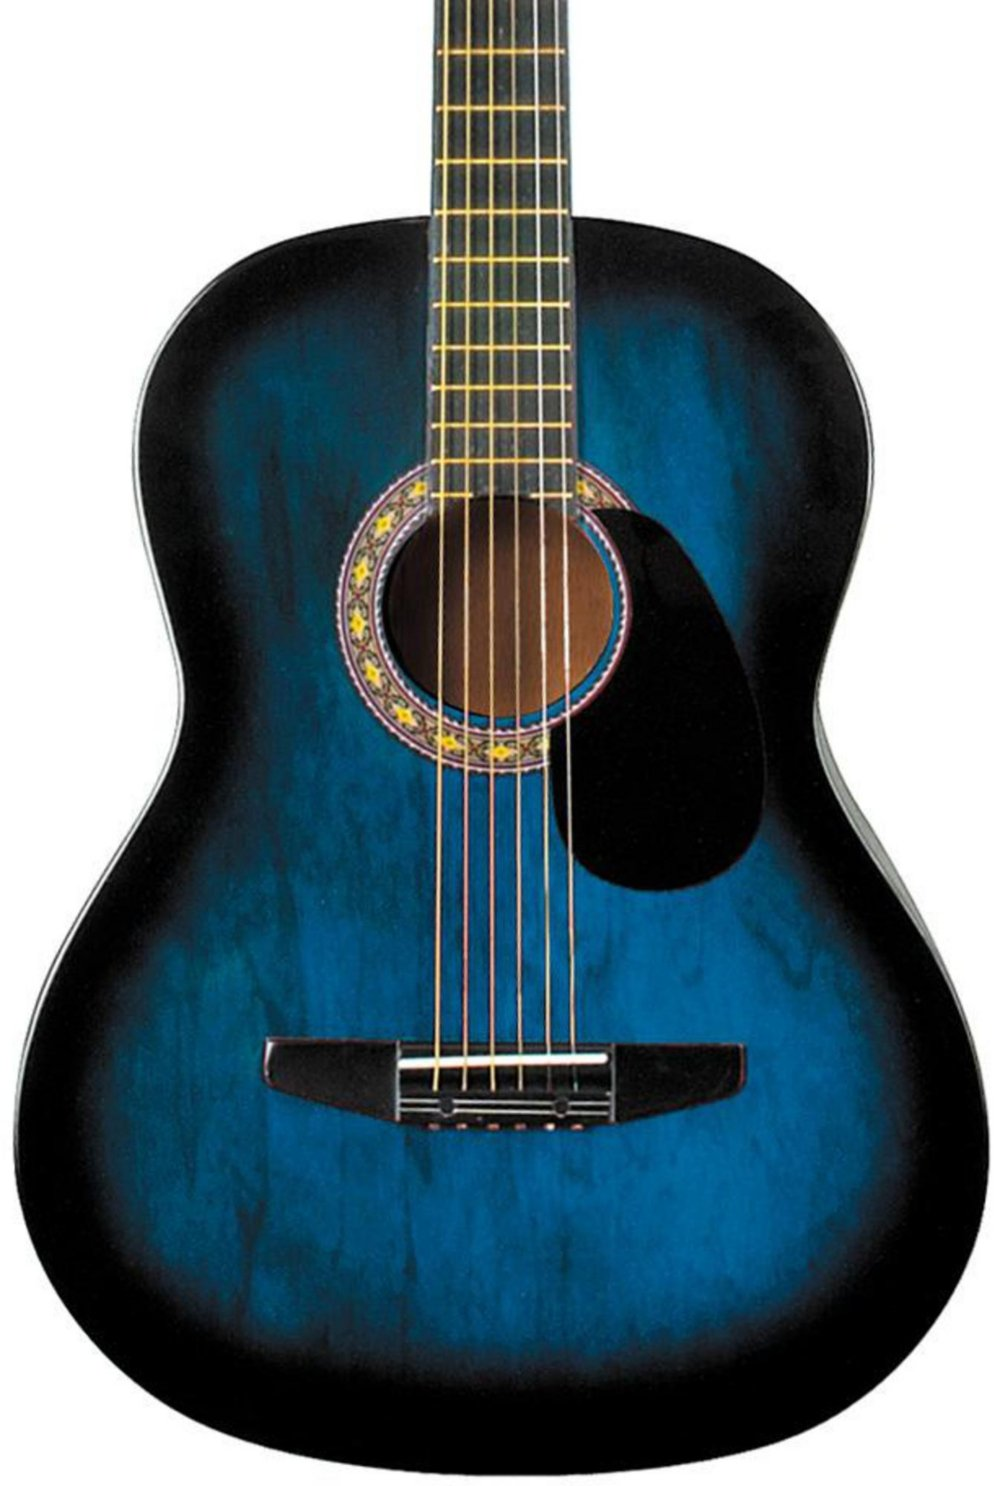 Rogue Starter Acoustic Guitar Blue Burst by Rogue